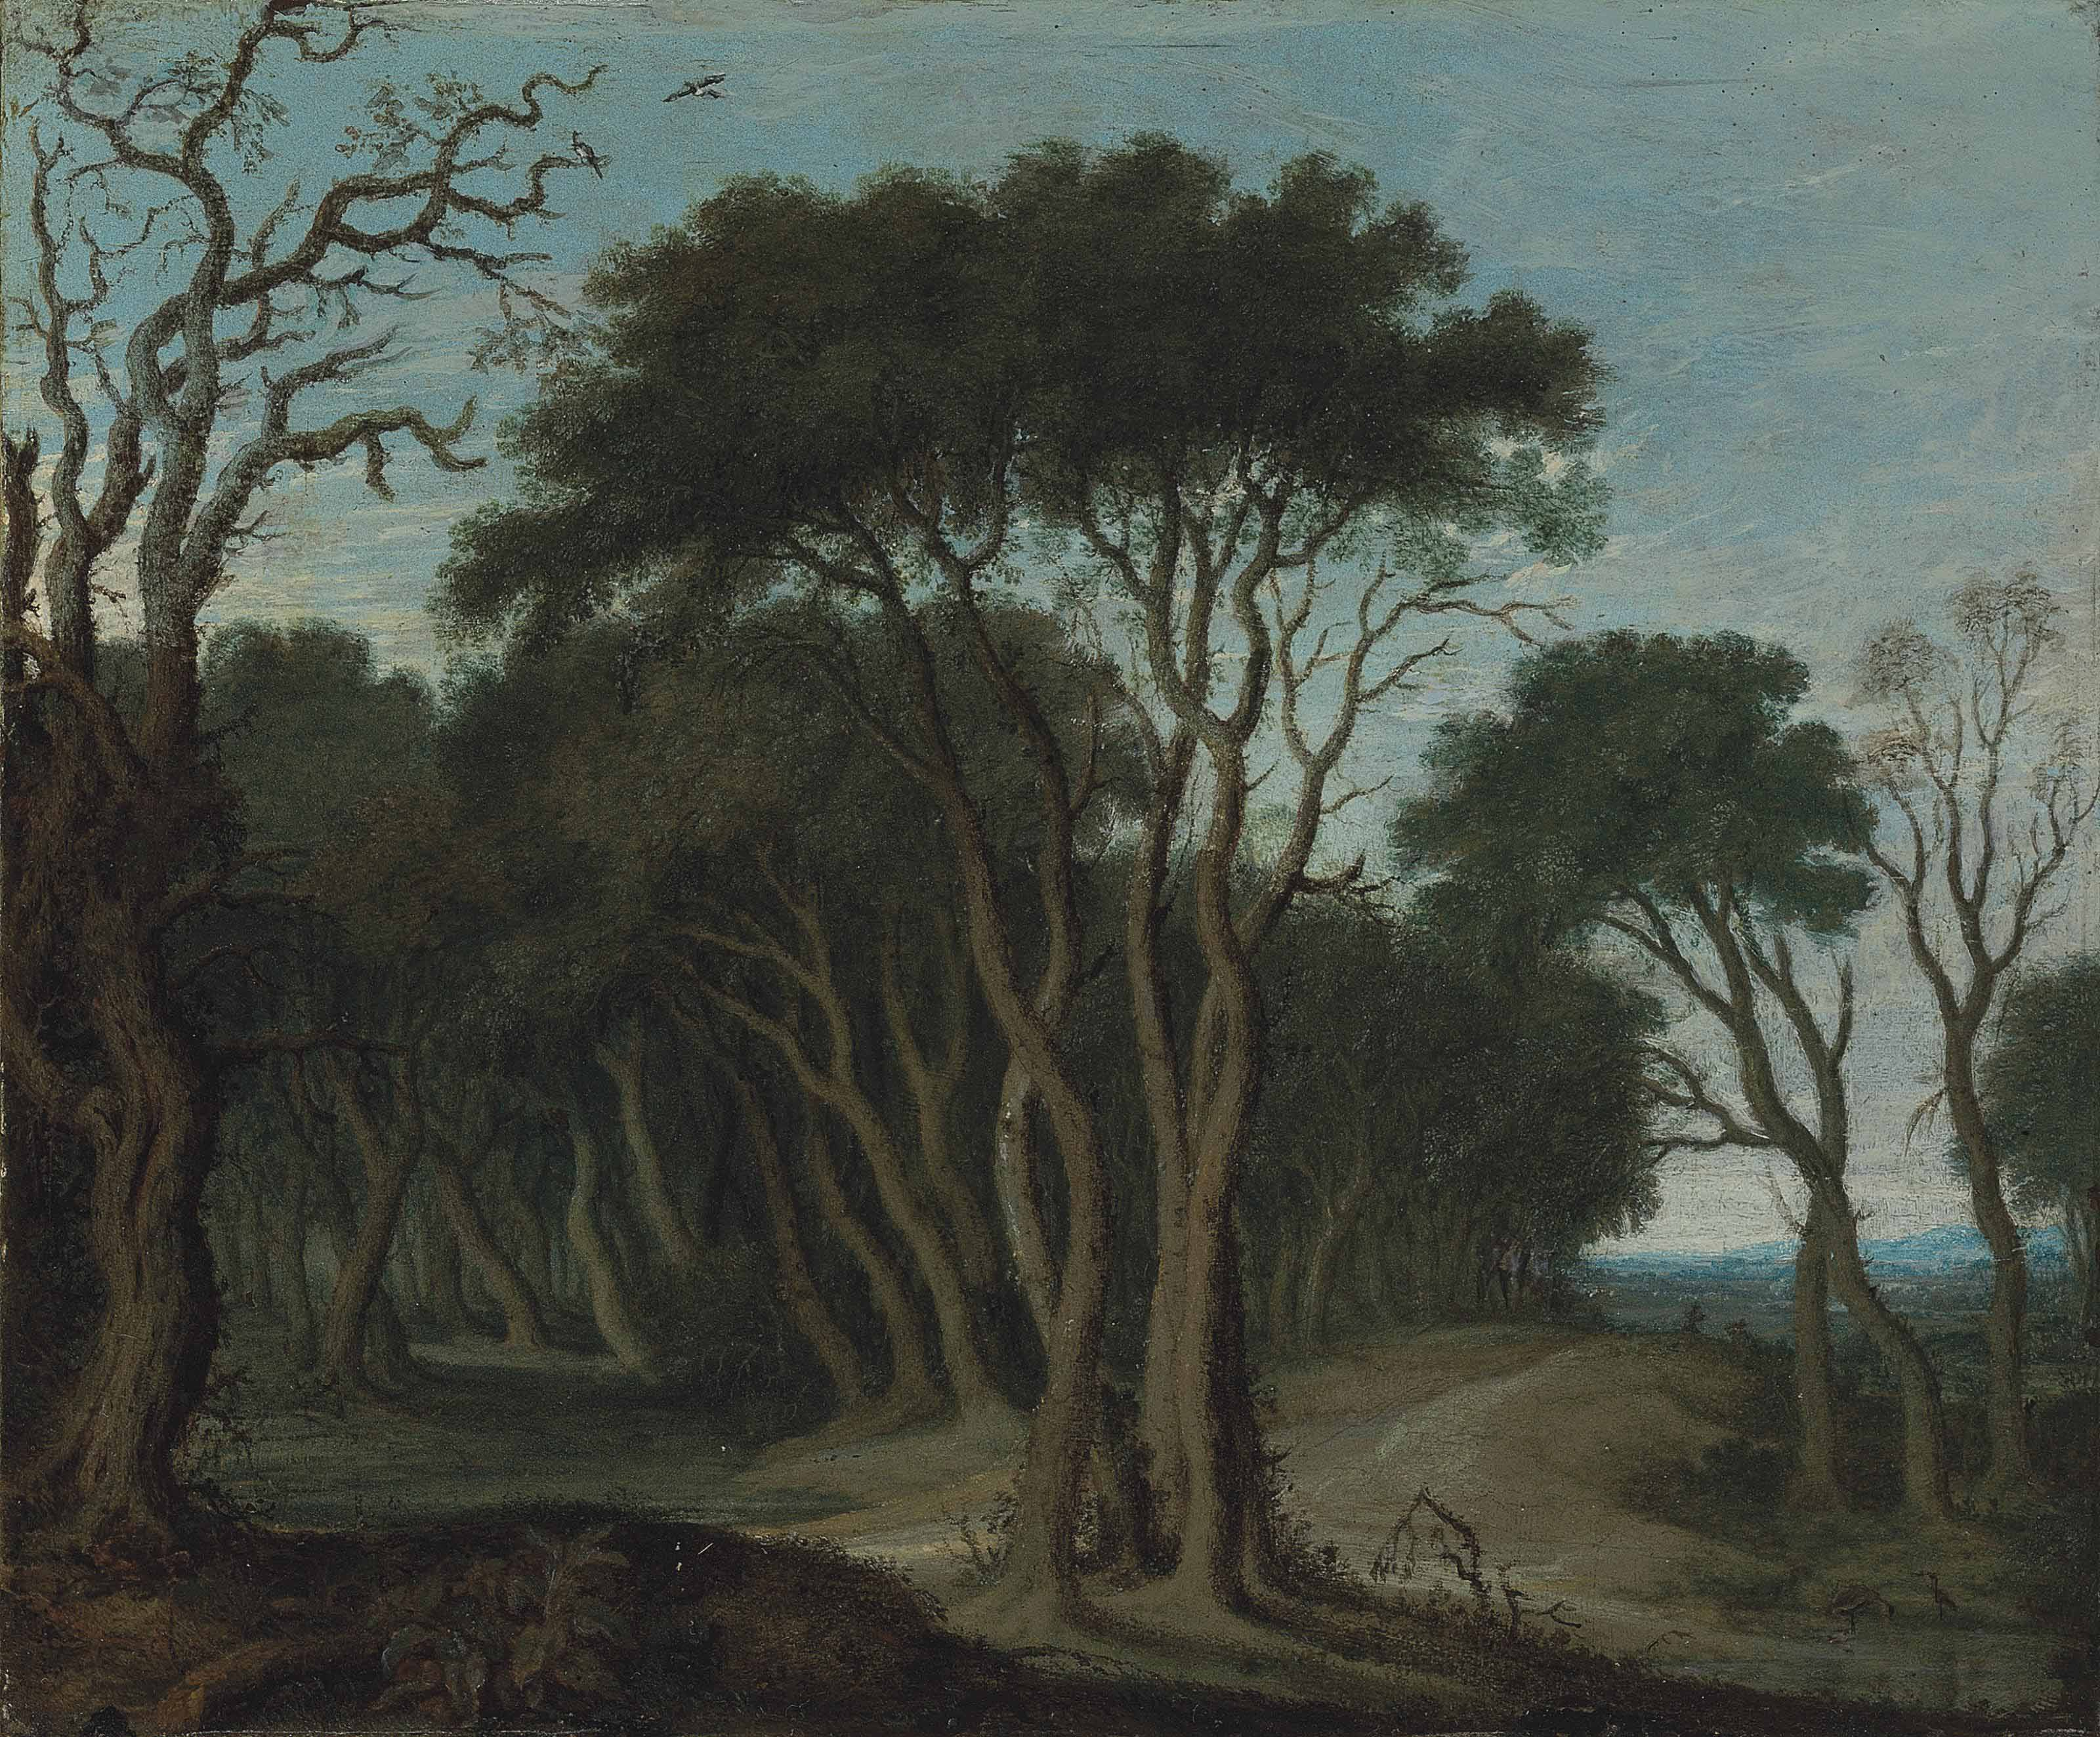 A wooded landscape with a path running through